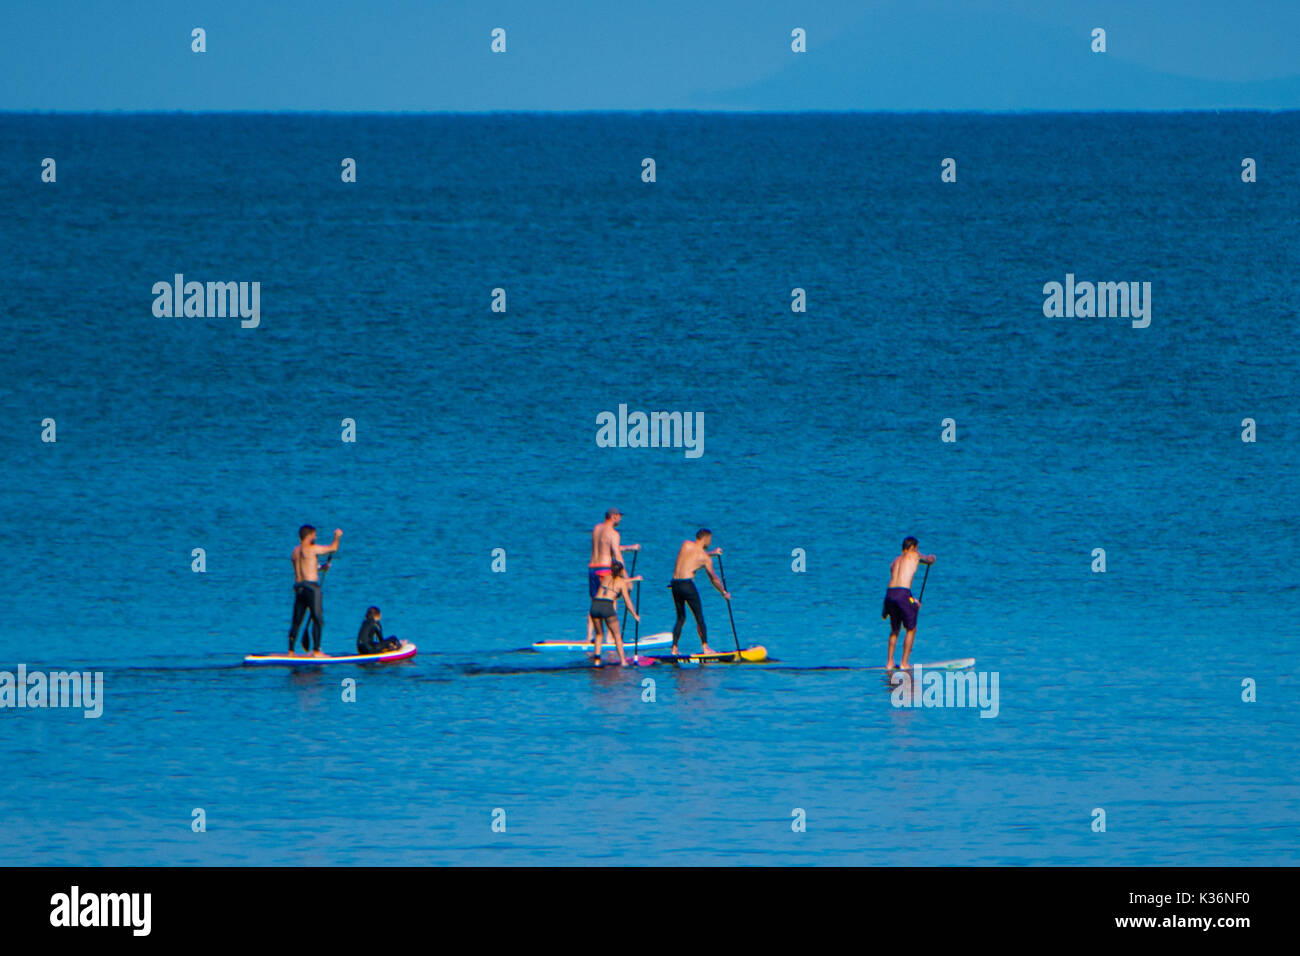 Aberystwyth Wales UK, Saturday 02 September 2017 UK Weather - On a bright sunny and warm September morning a group of friends go paddleboarding on the flat calm sea off Aberystwyth Wales. The weather is set to change overnight, turning overcast with a band of rain sweeping in from the west photo Credit: Keith Morris/Alamy Live News - Stock Image